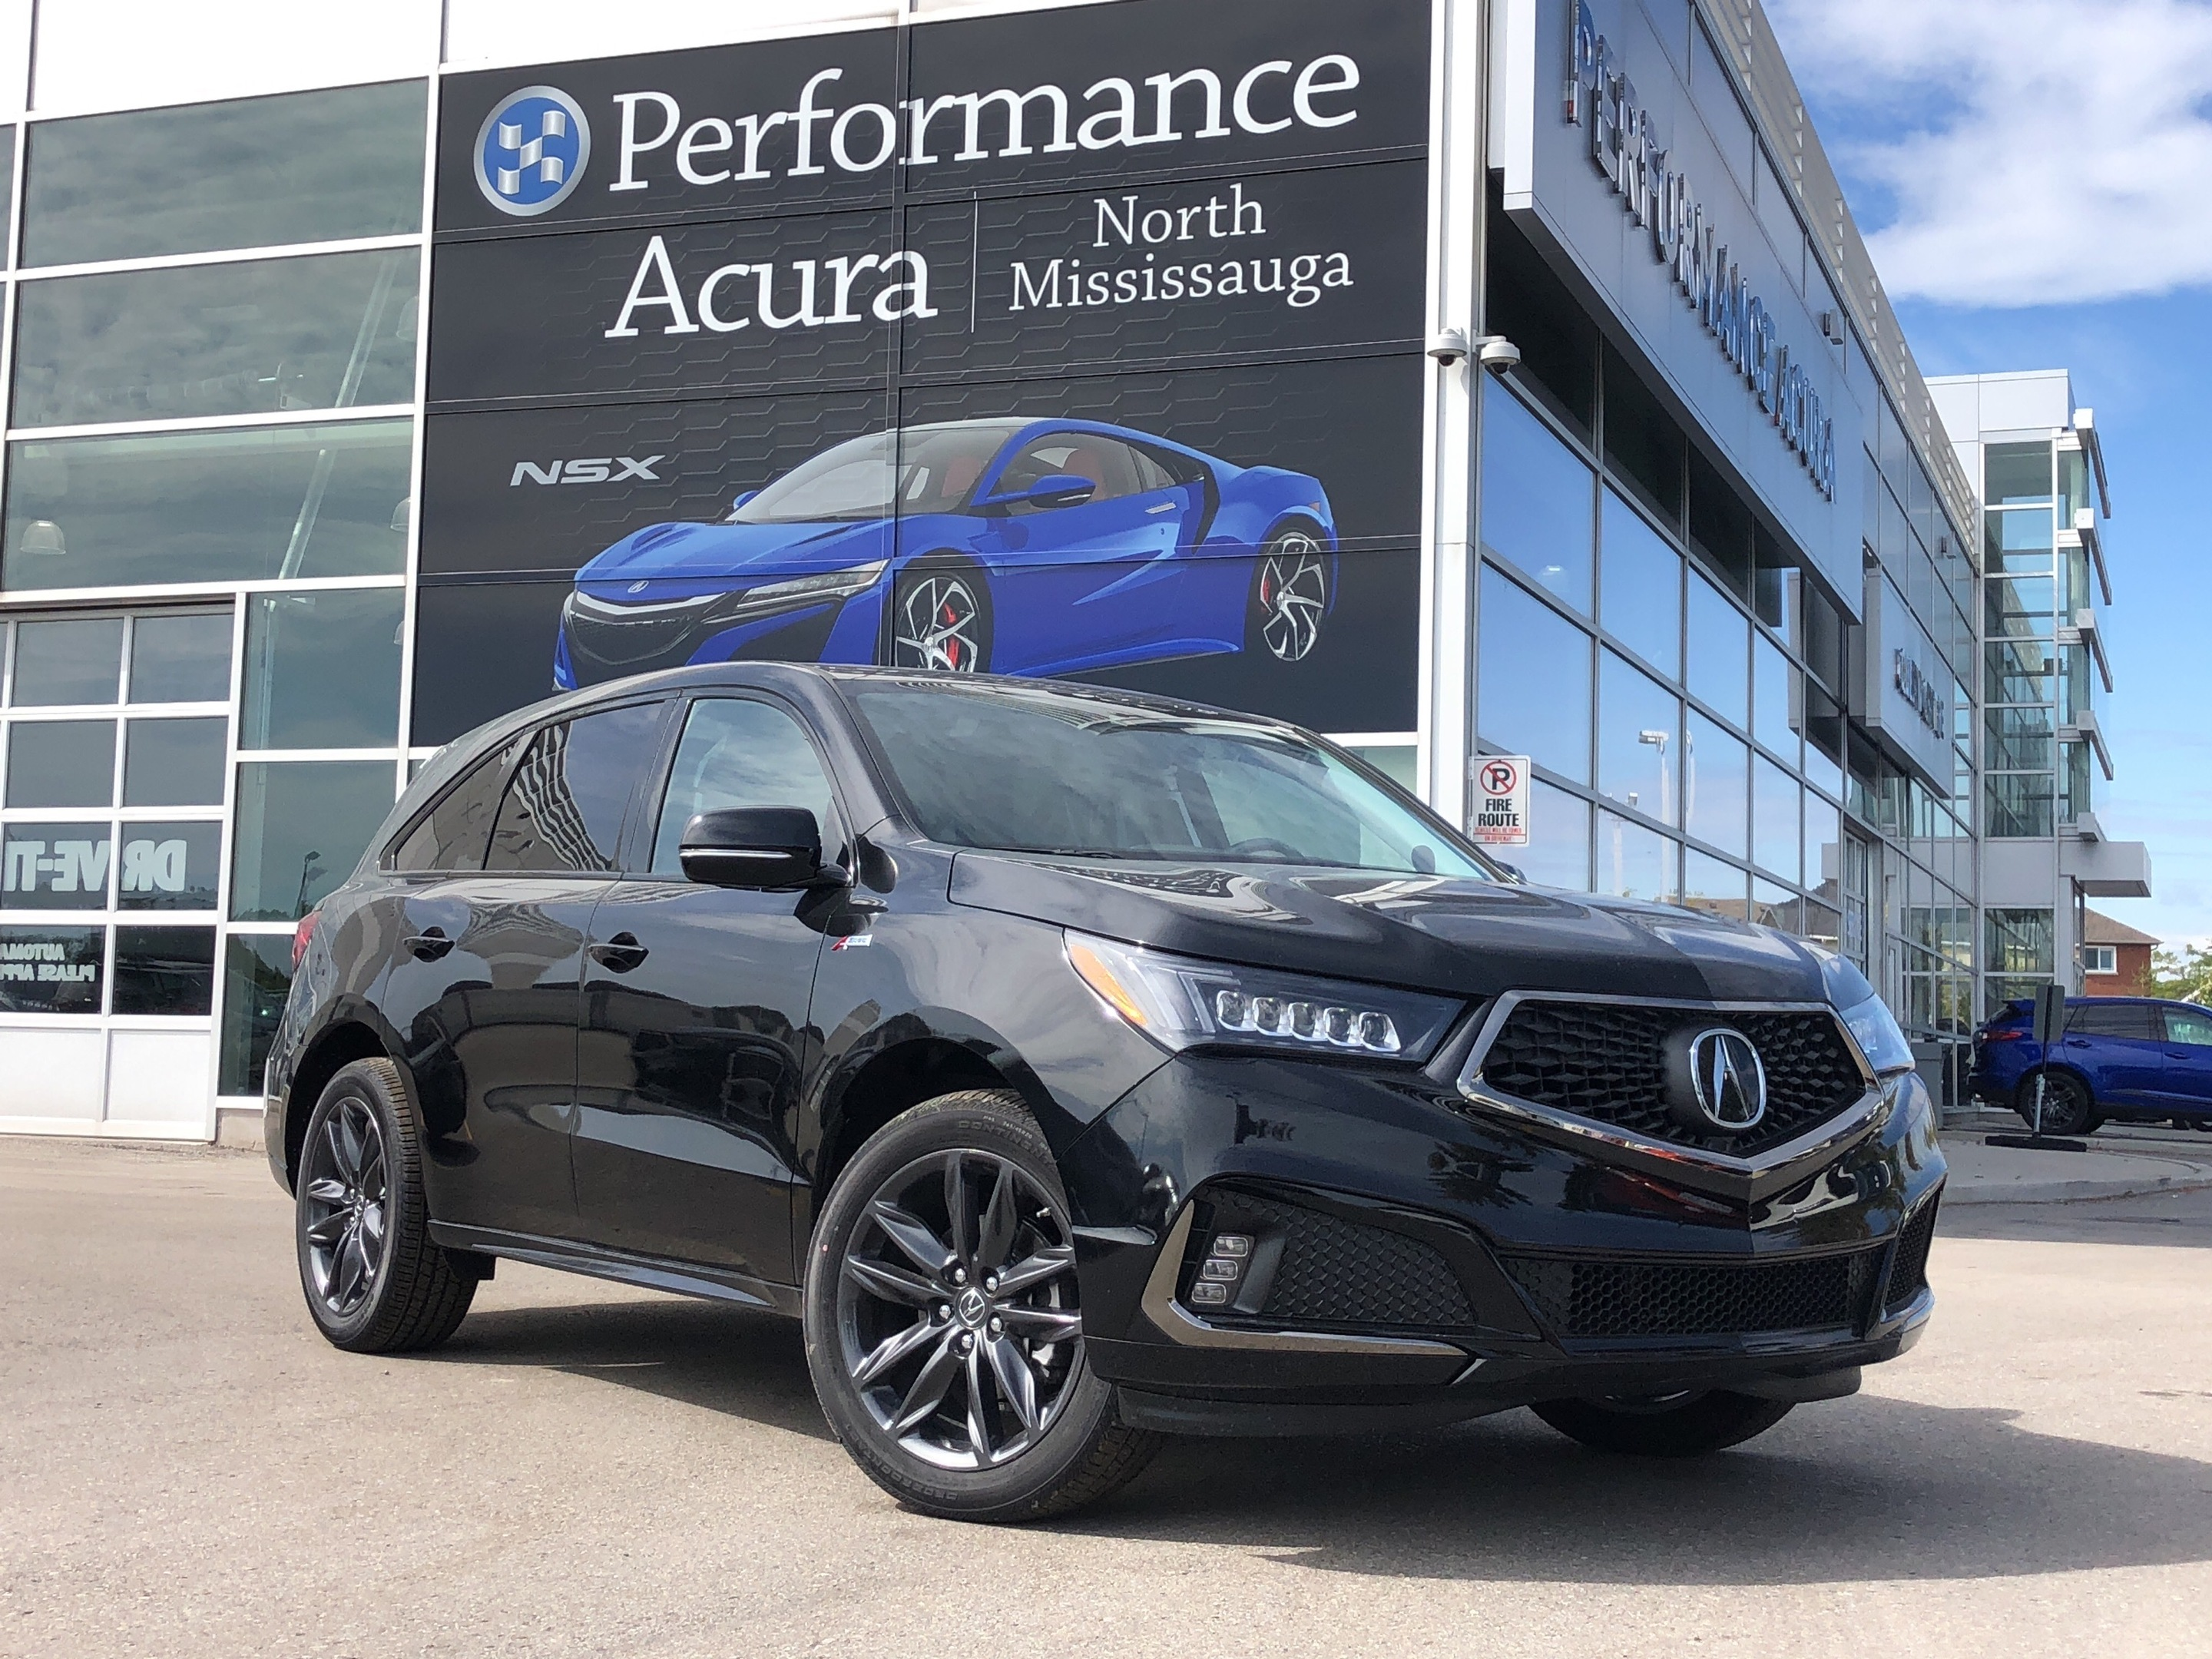 Top 10 Crossovers For 2019: Top 10 Most Fuel Efficient SUVs And Crossovers In Canada